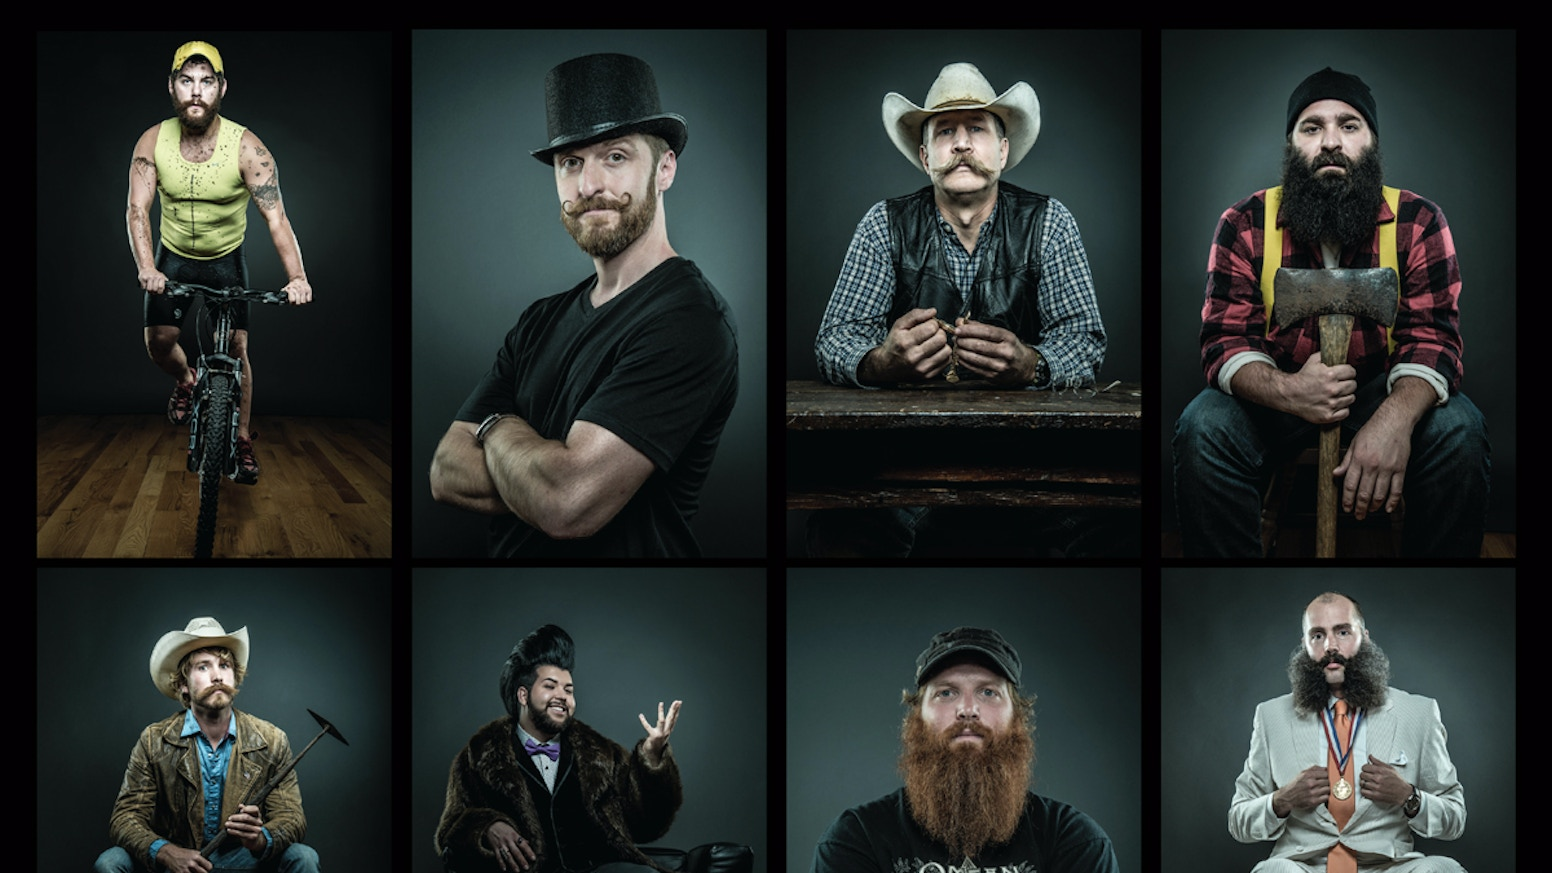 Photographer Joseph D.R. OLeary created portraits of 150+ bearded men for an exquisite, limited-edition, coffee table book.